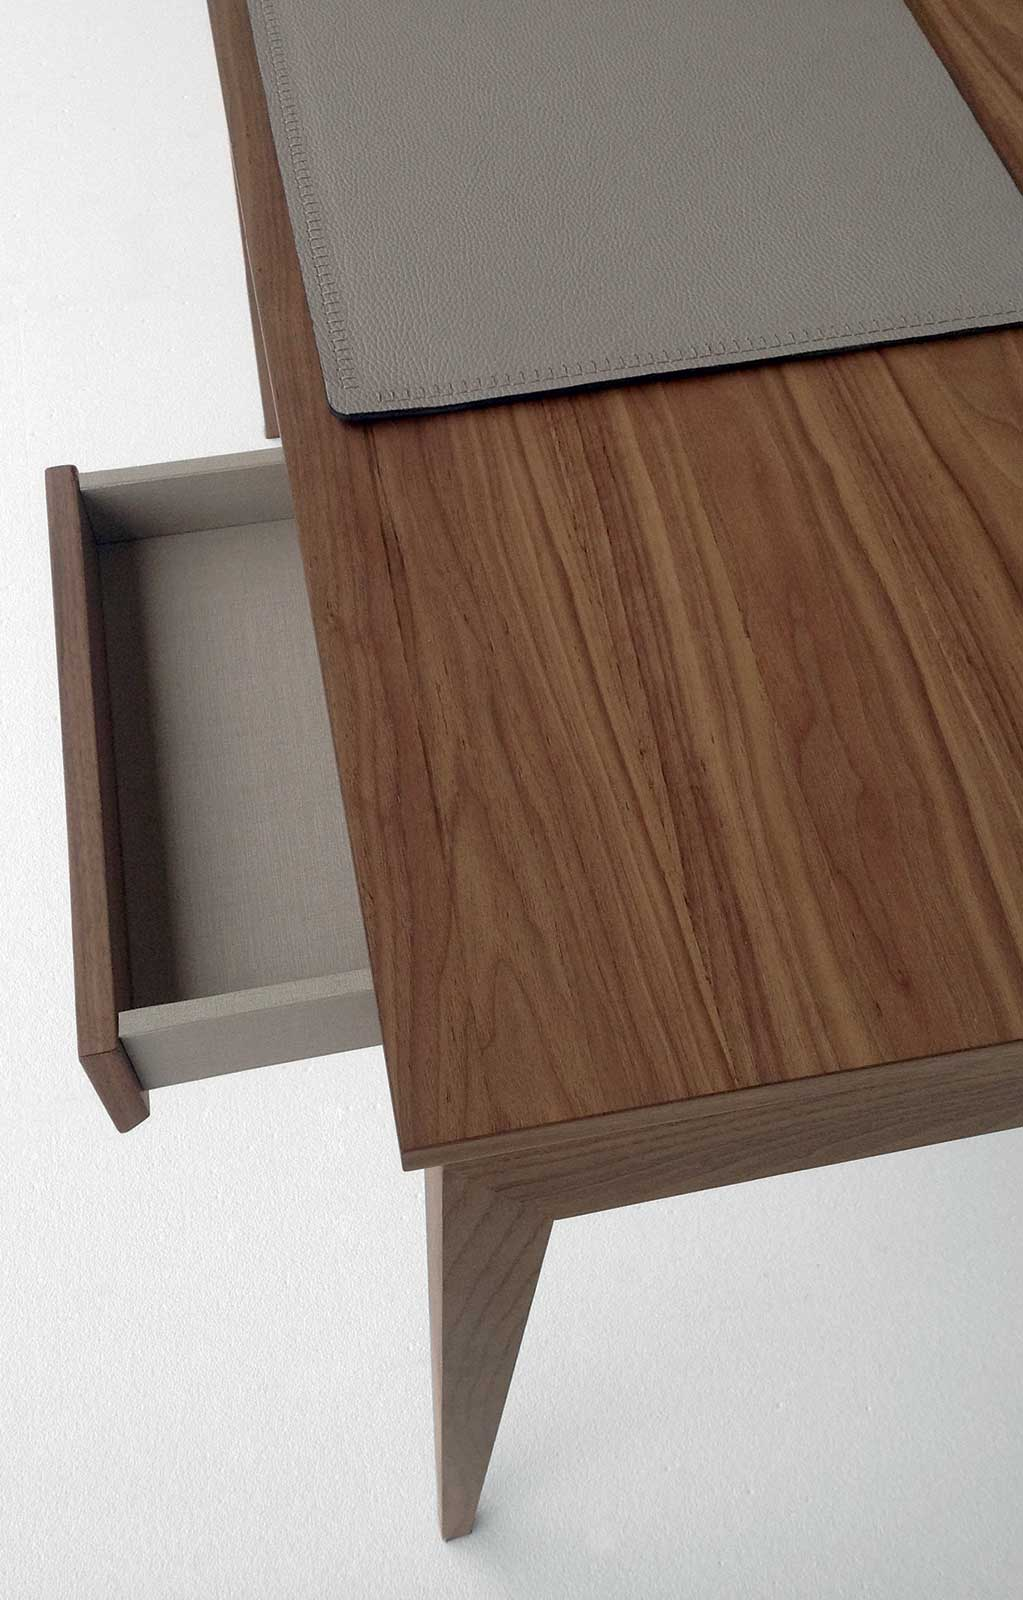 writing desk organiser bureau drawer leg leather mat office storage shelf white furniture stores design delivery home makers quality retailers websites